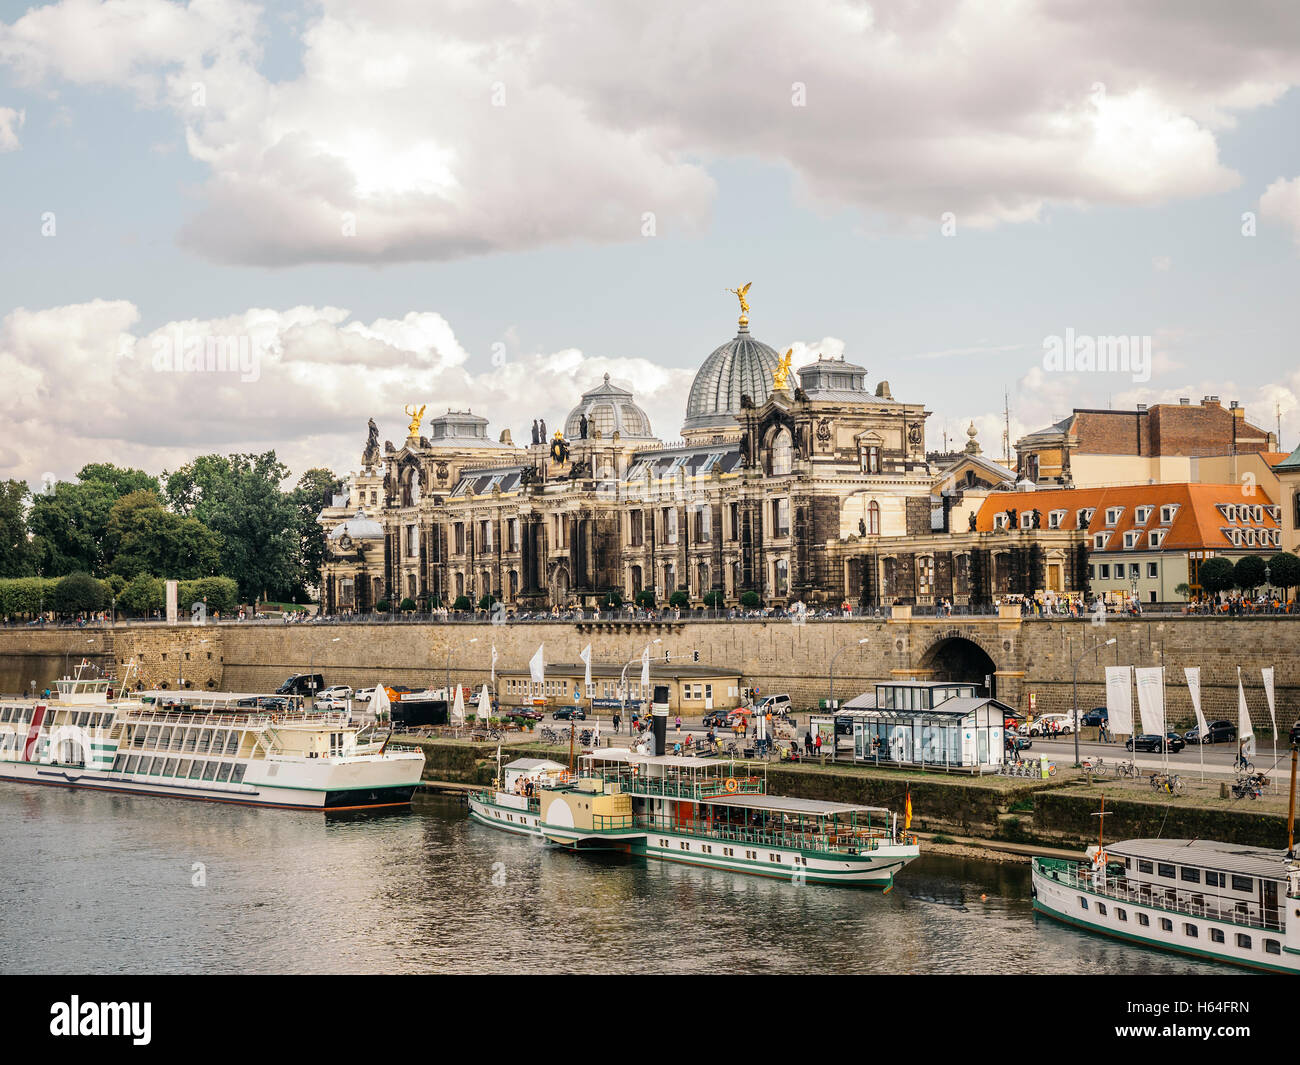 Germany, Saxony, Dresden, academy for visual arts in front of Elbe river - Stock Image